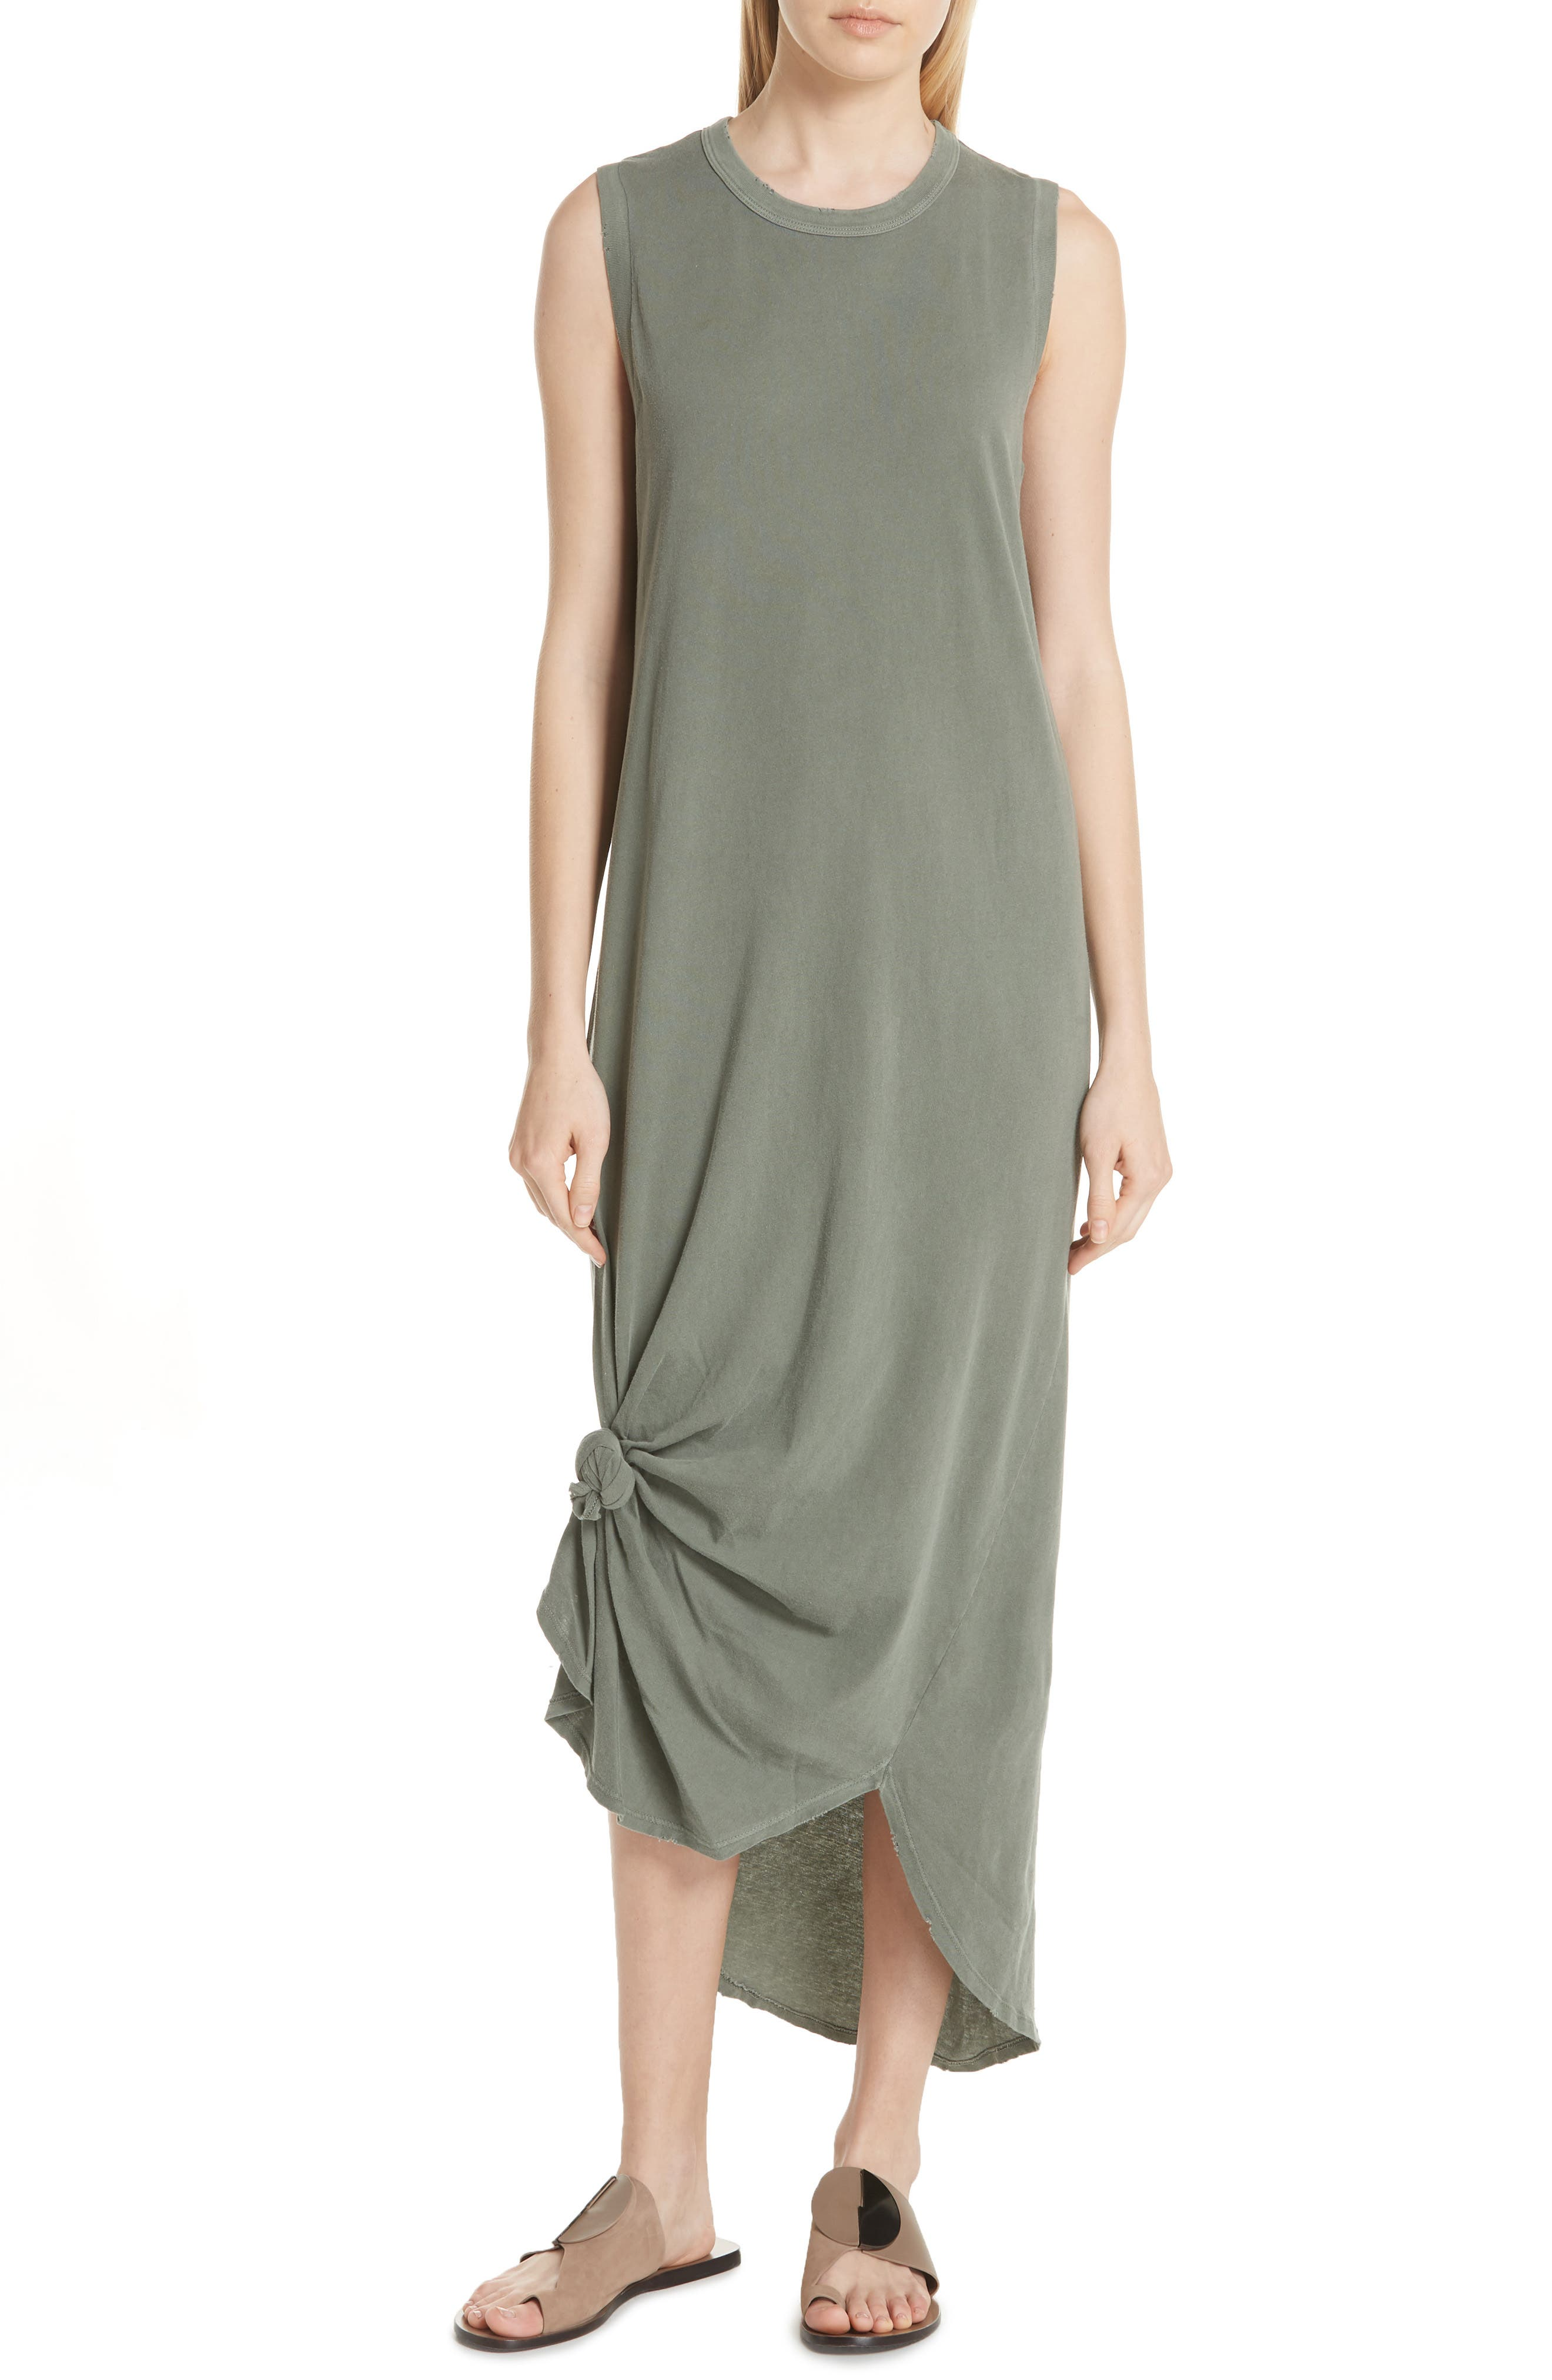 THE GREAT. Knotted Muscle Tank Dress